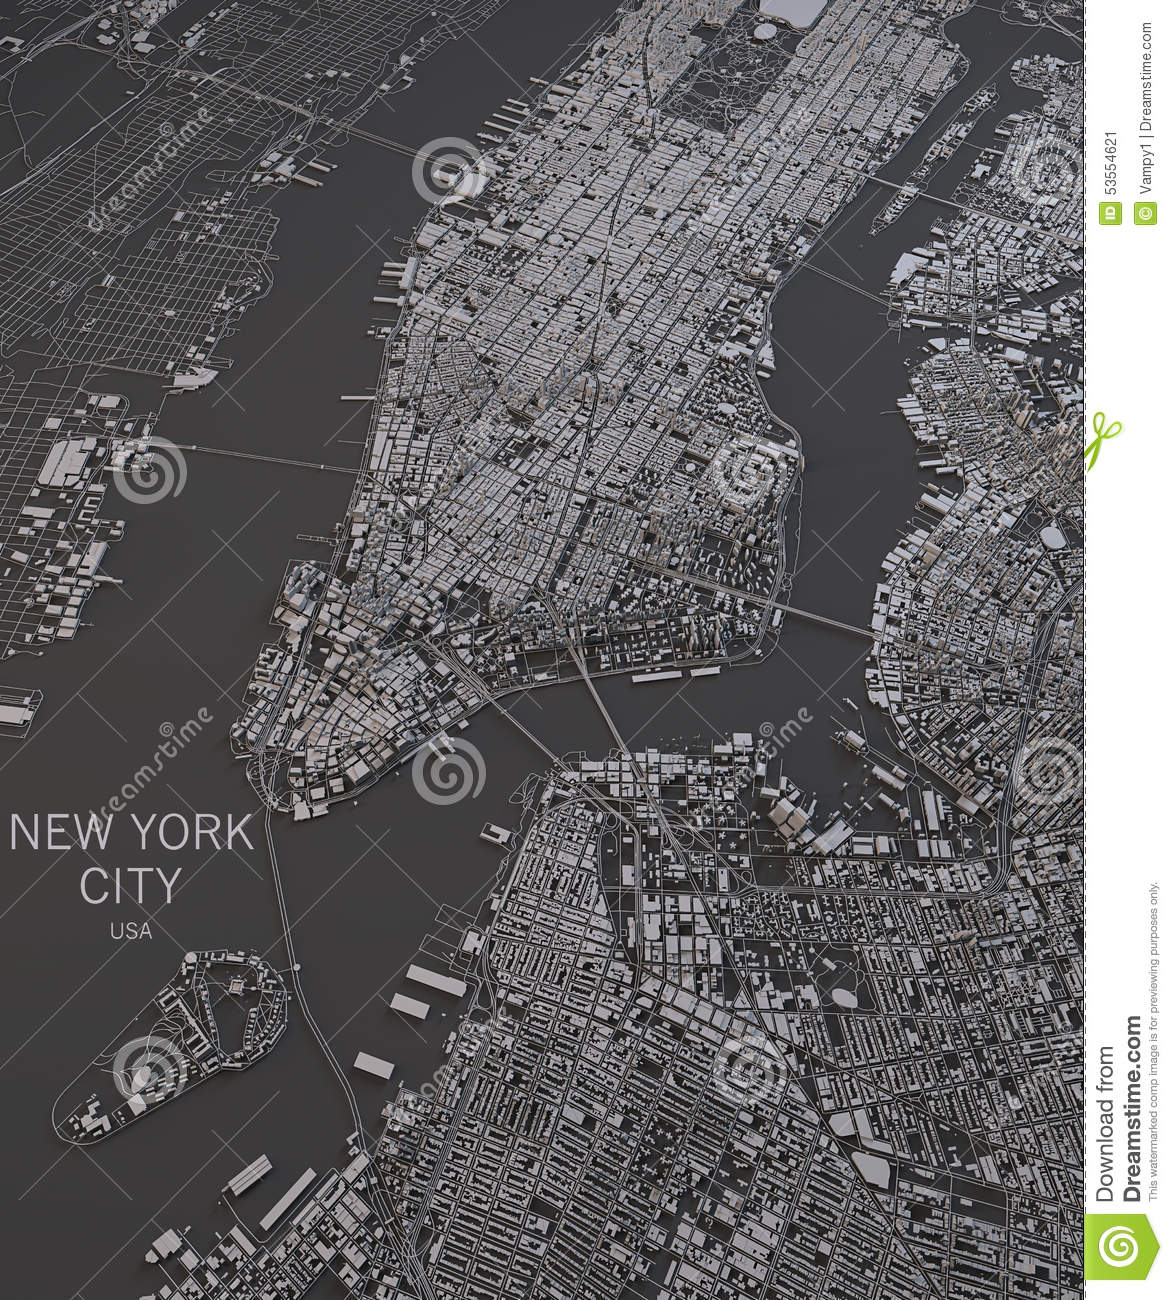 Royalty Free Ilration Download New York City Map